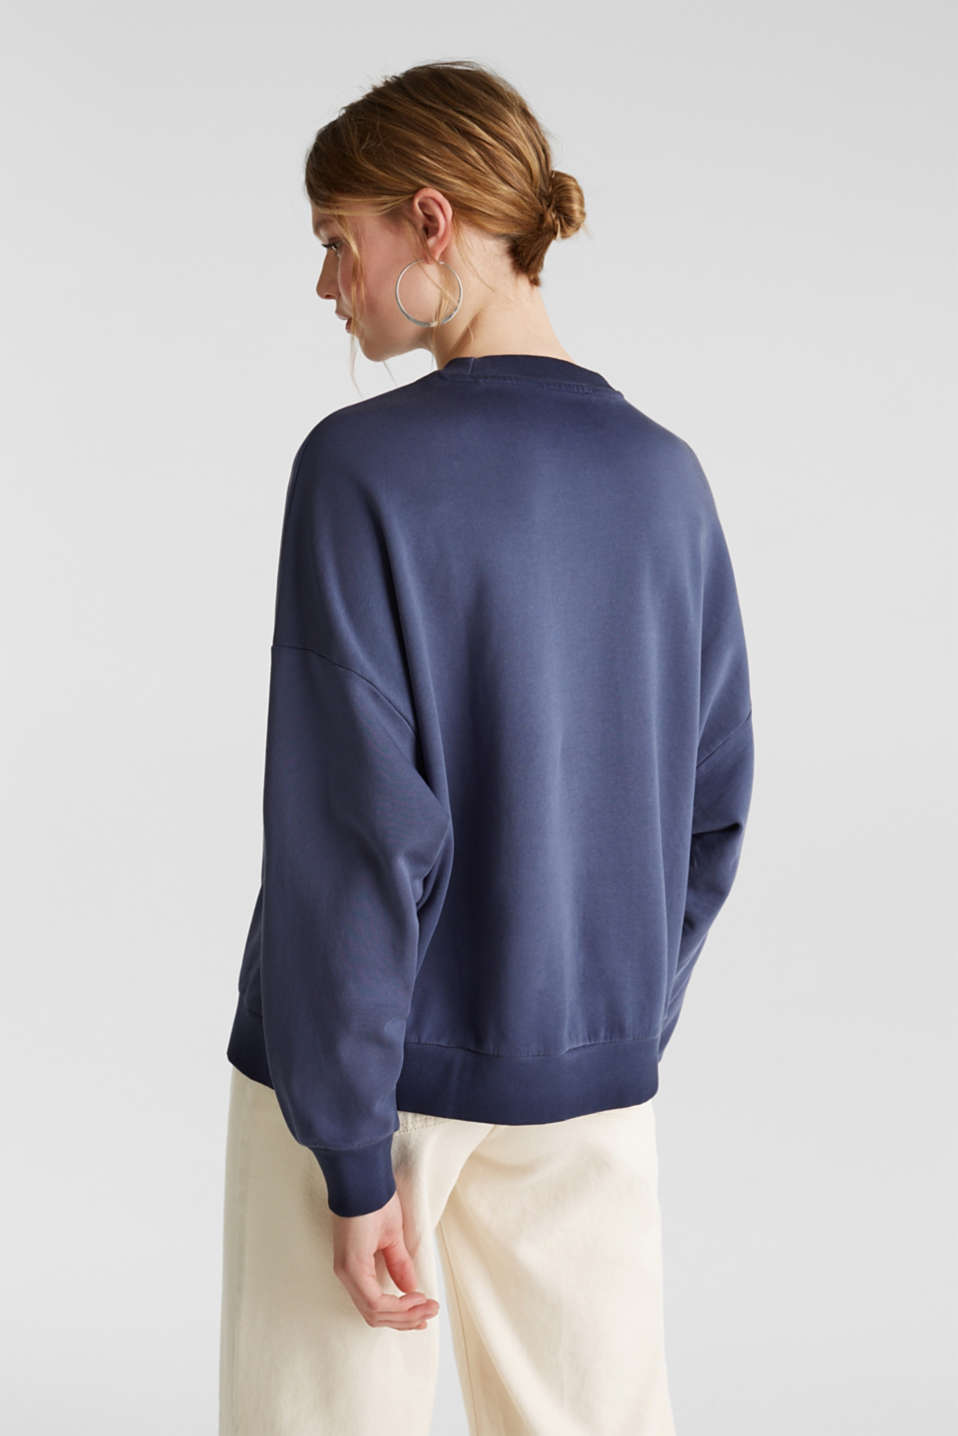 Sweatshirt with batwing sleeves, 100% cotton, NAVY, detail image number 3